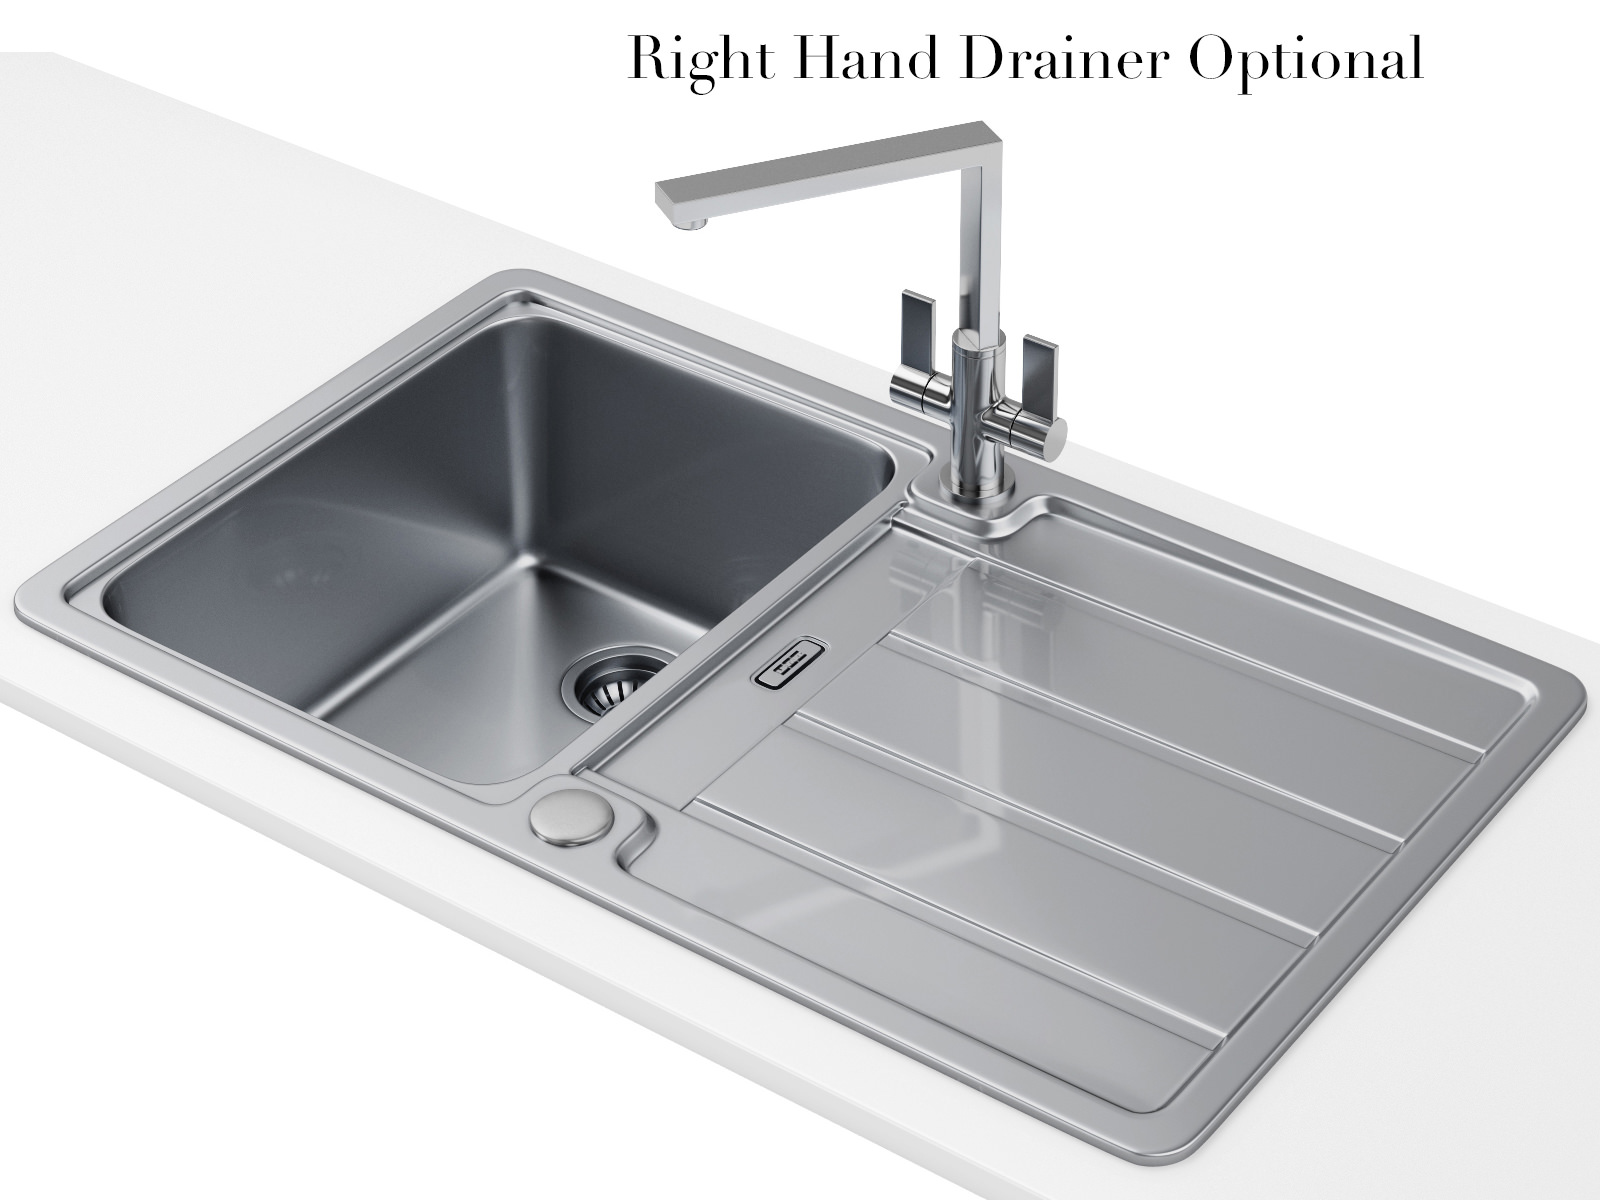 Large Stainless Steel Sinks Uk : ... Hydros Designer Pack HDX 614 1.0 Bowl Stainless Steel Sink And Tap